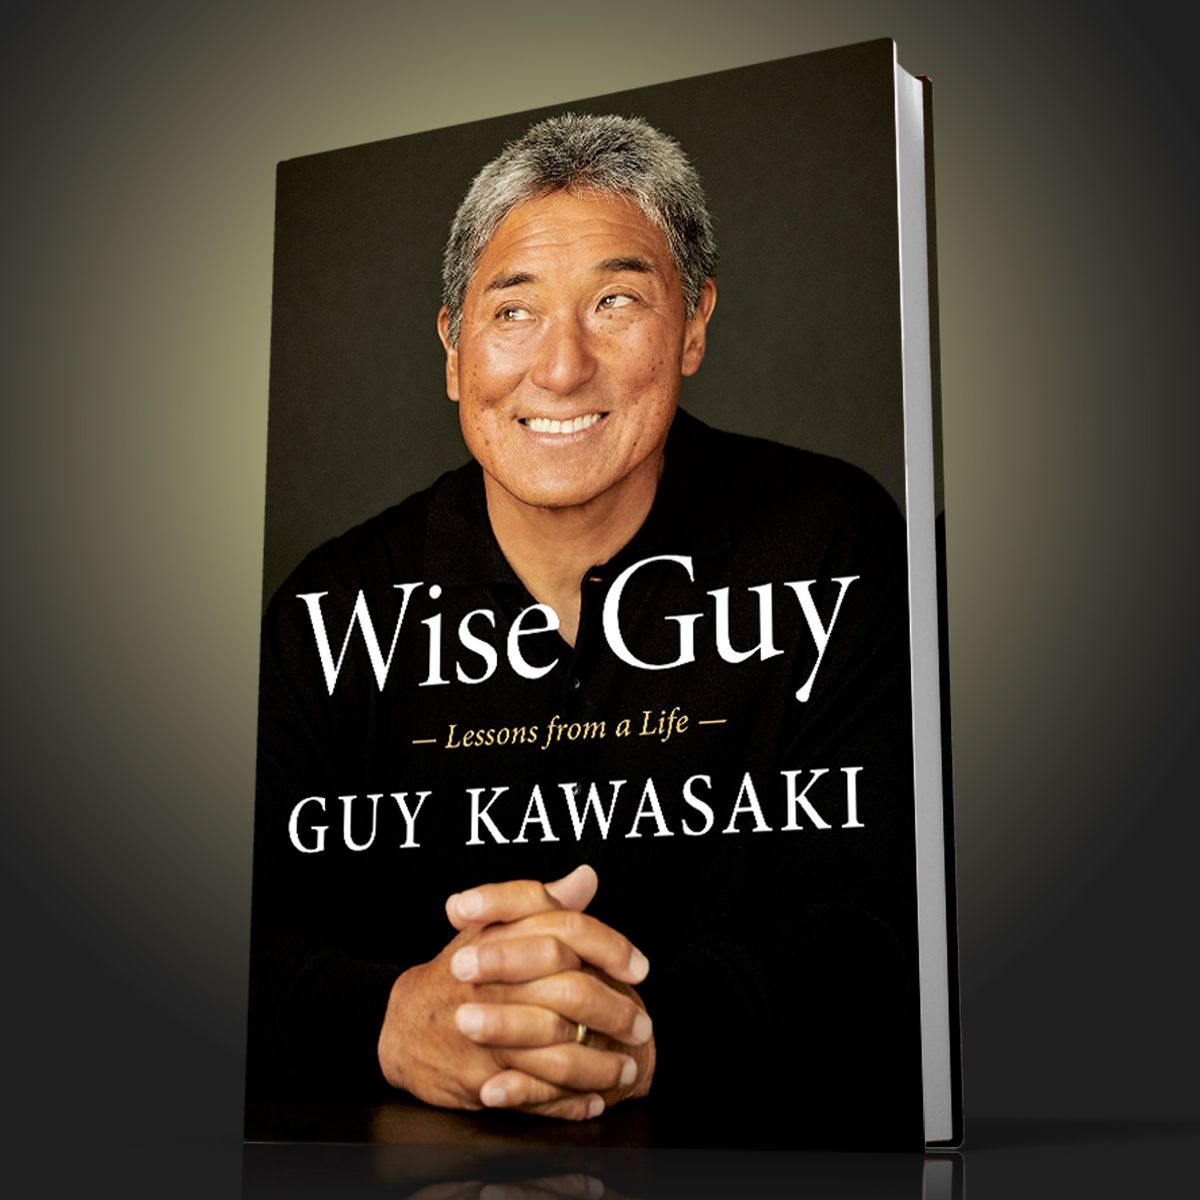 Best Podcasts for Entrepreneurs | Guy Kawasaki's Wise Guy on the Thrivetime Show Podcast